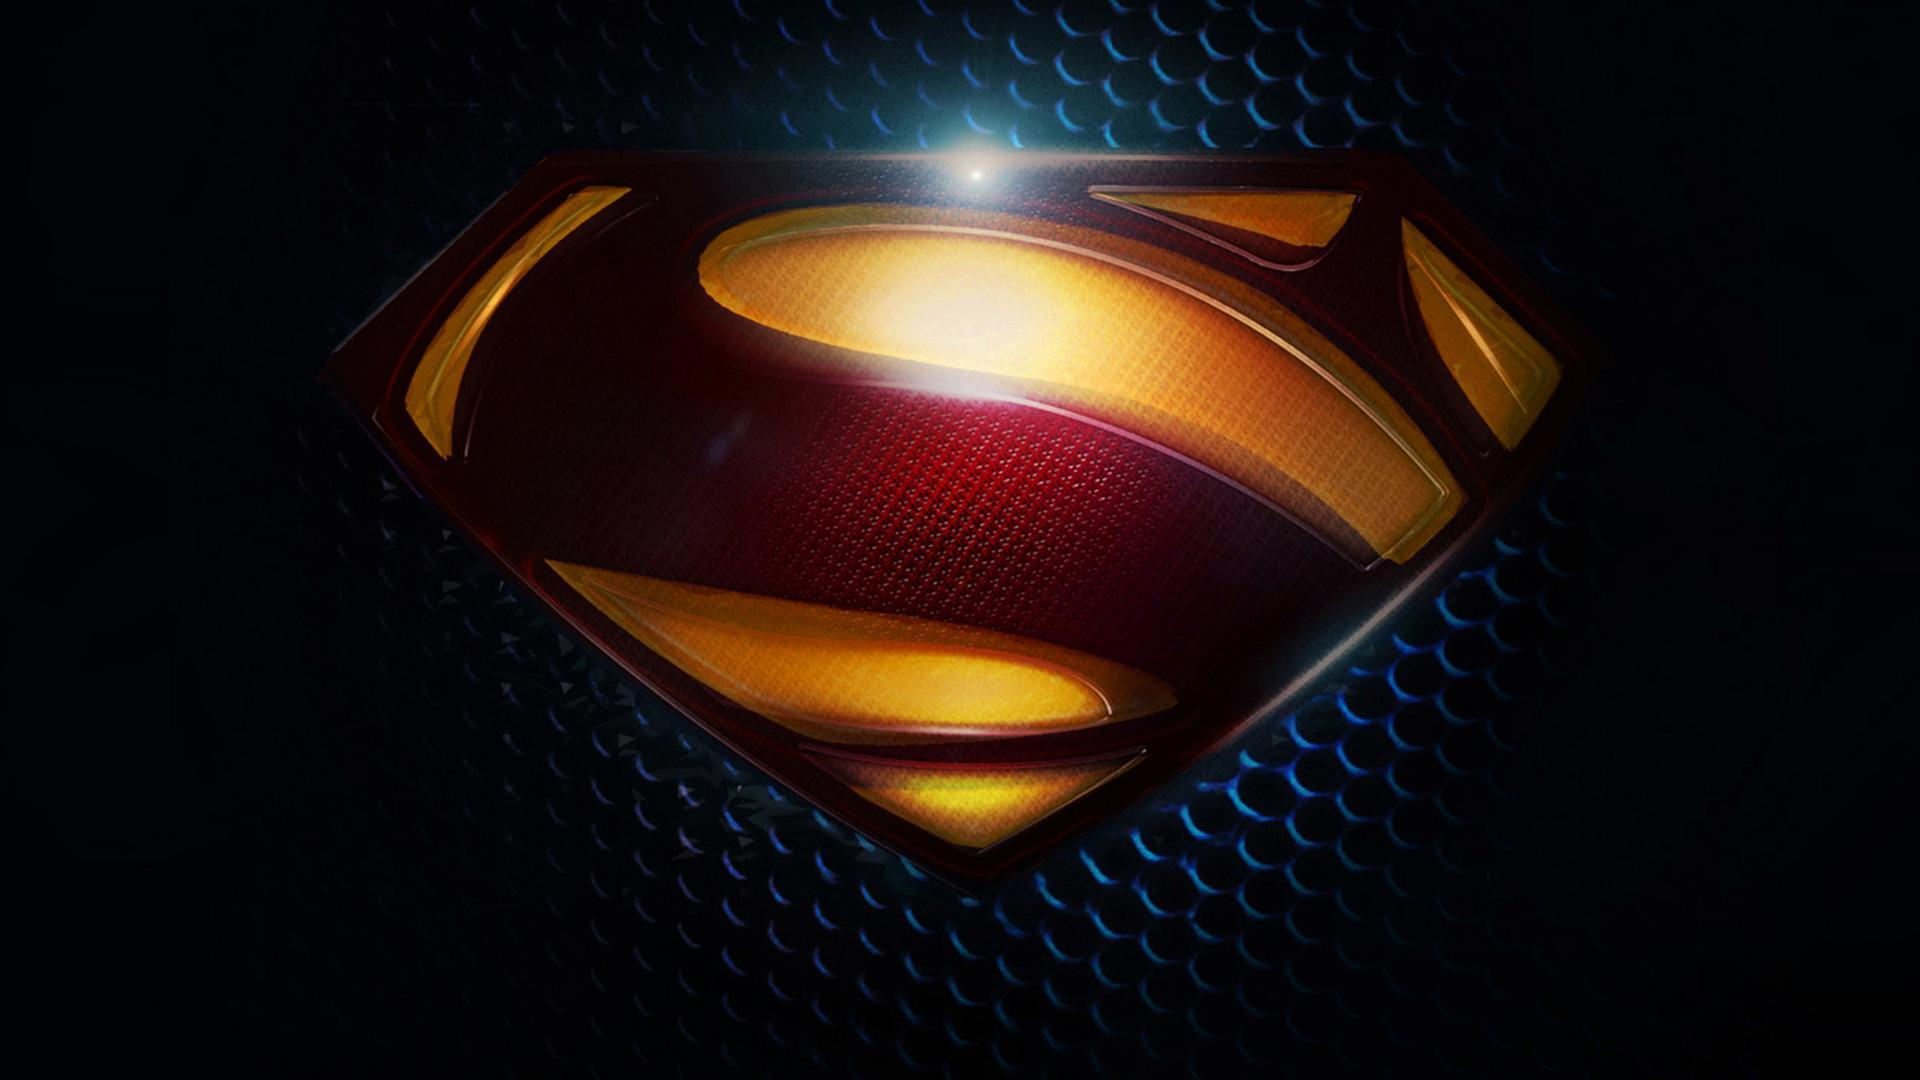 Superman wallpapers 1080p wallpaper cave wallpapers for superman man of steel wallpaper hd 1920x1080 voltagebd Gallery